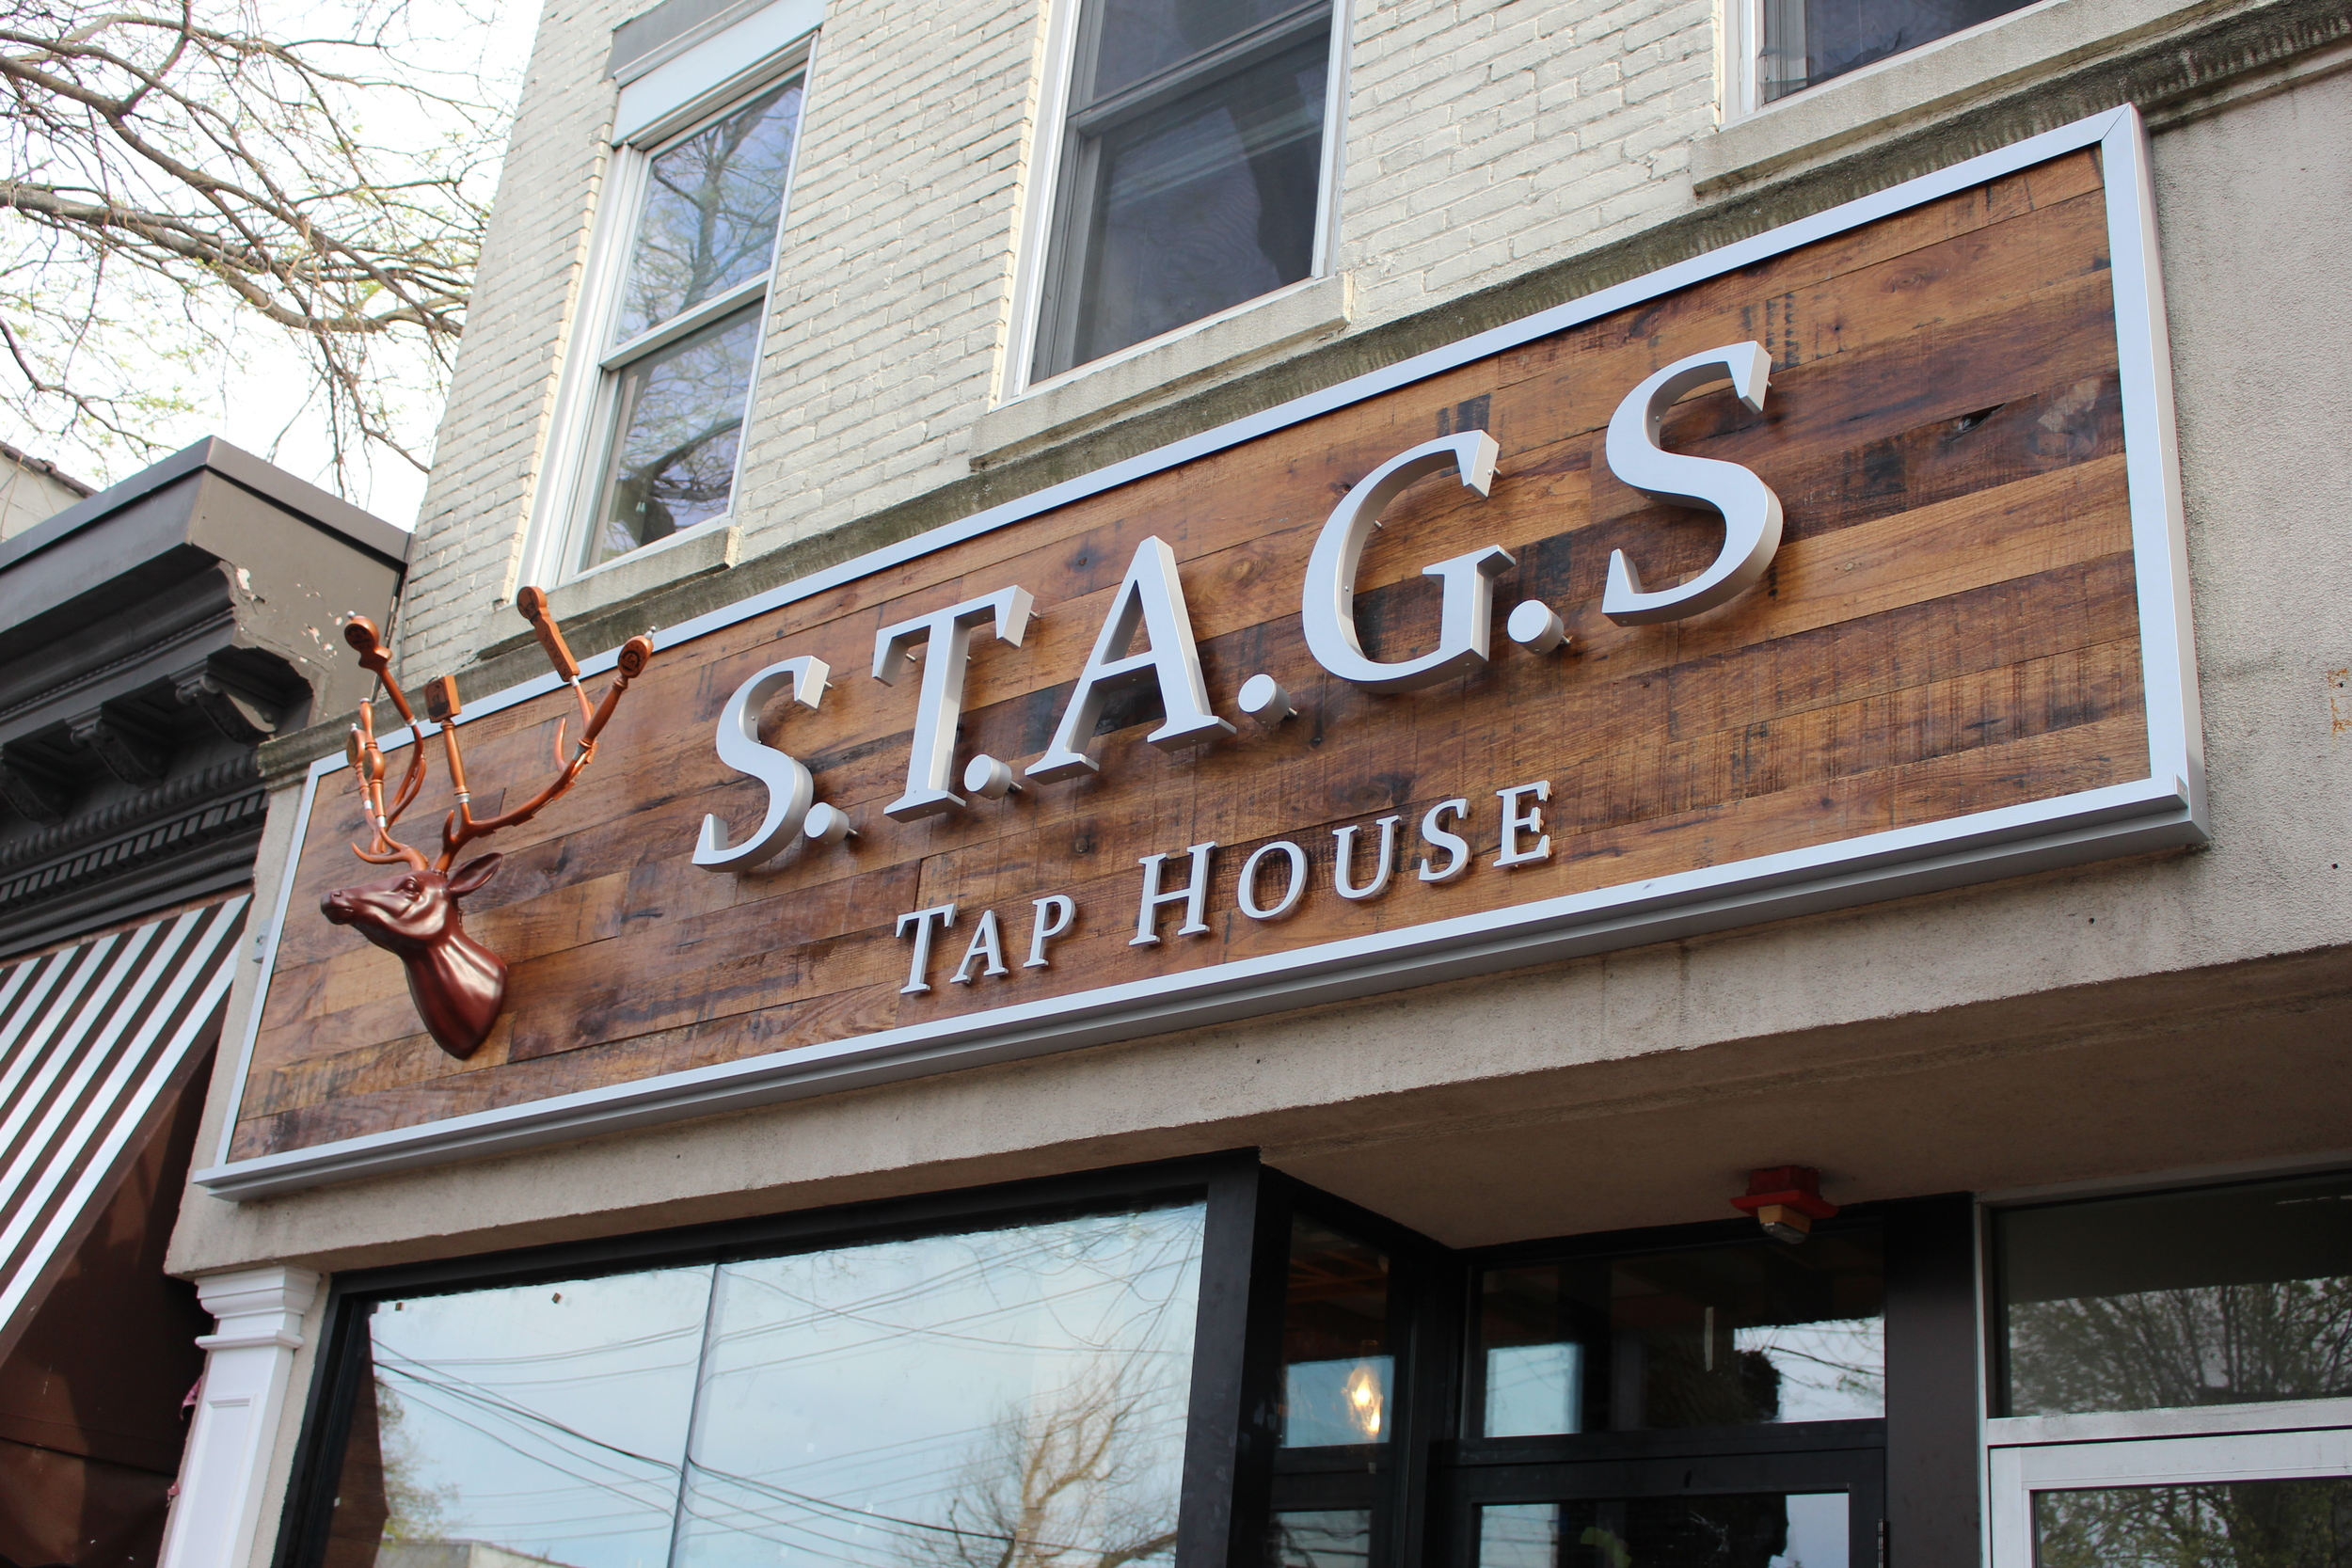 S.T.A.G.S Tap House officially opened its doors in Huntington village on Saturday.